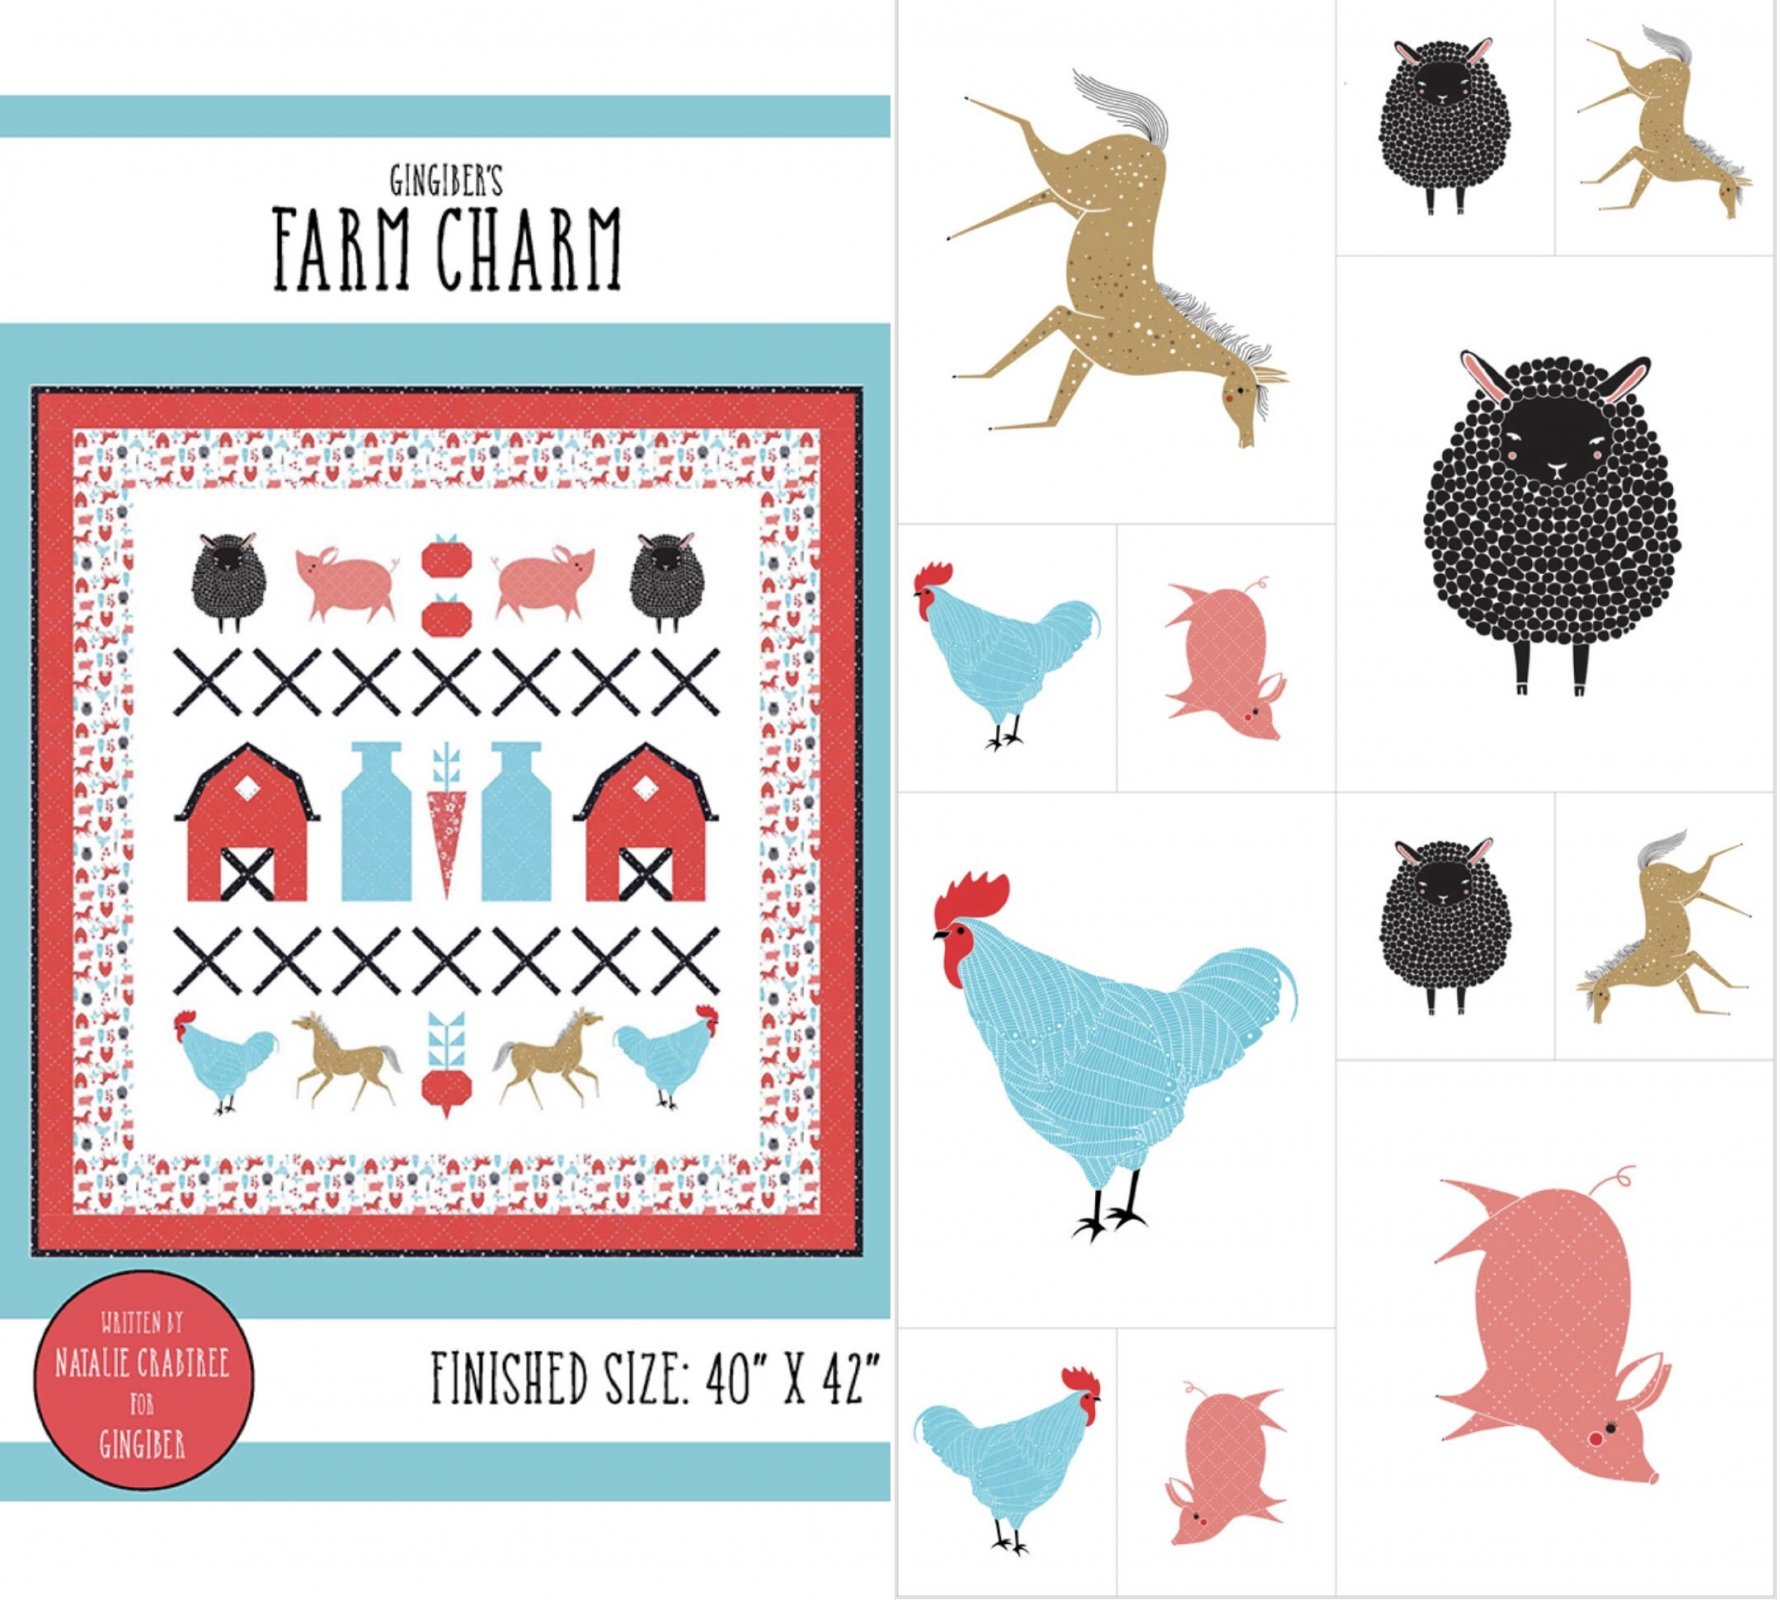 Farm Charm Pattern with Panel